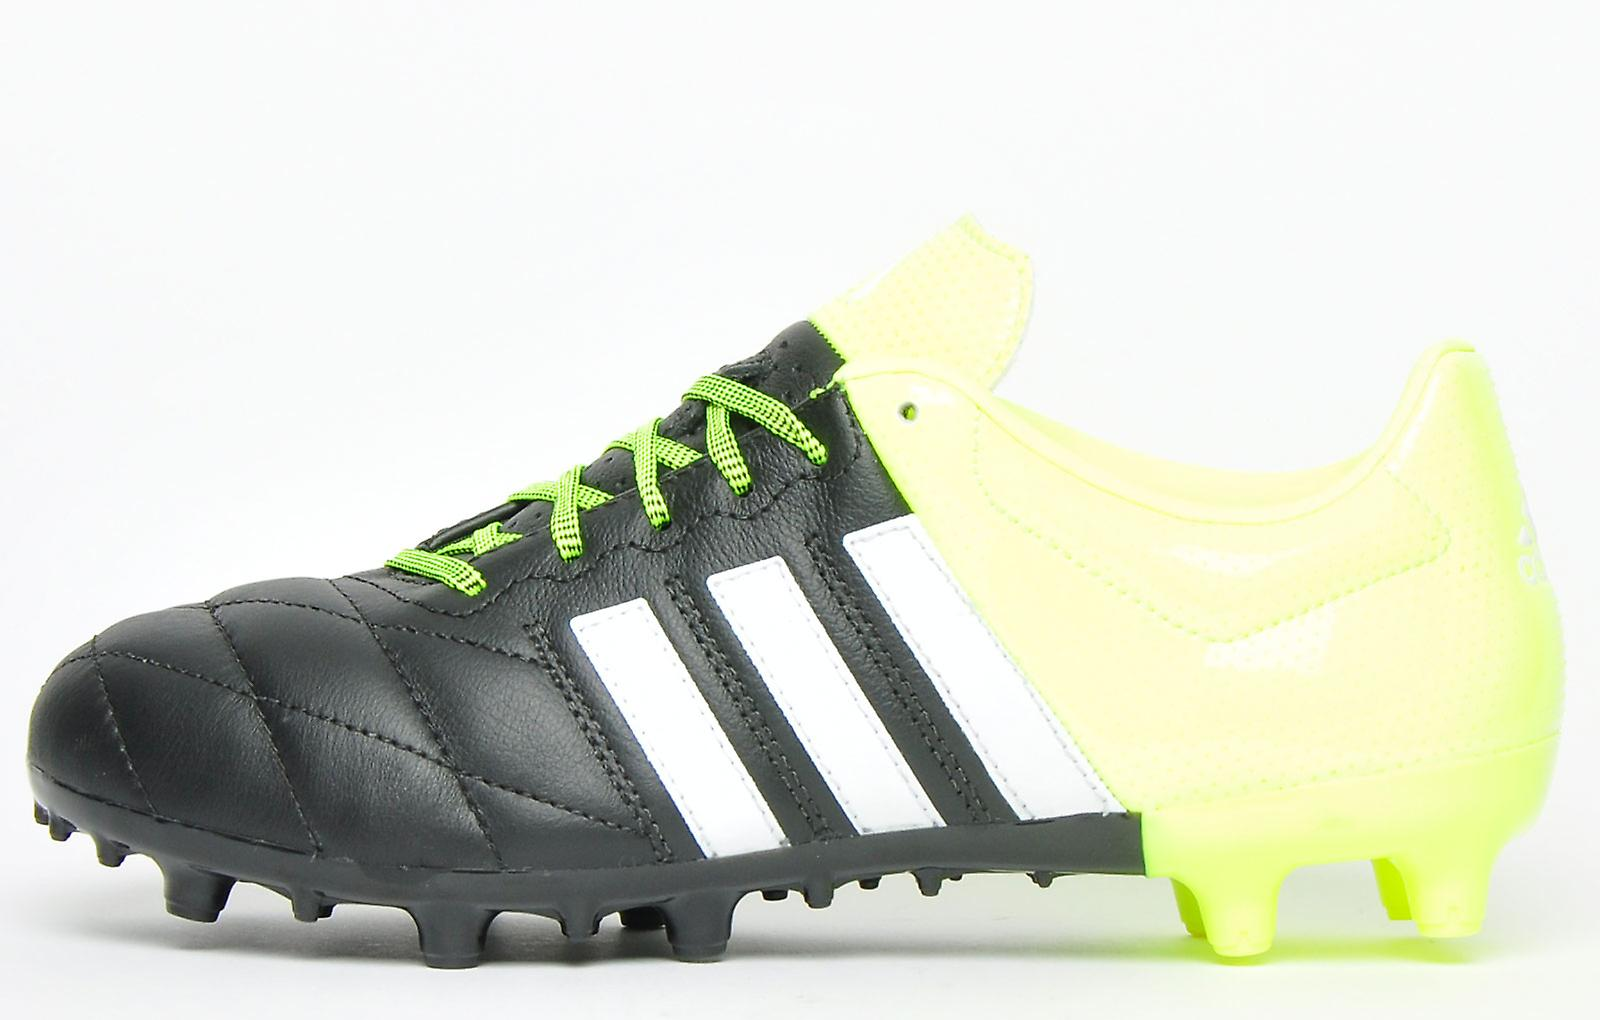 Adidas Ace 15.3 Fg / Ag Leather Yellow Black